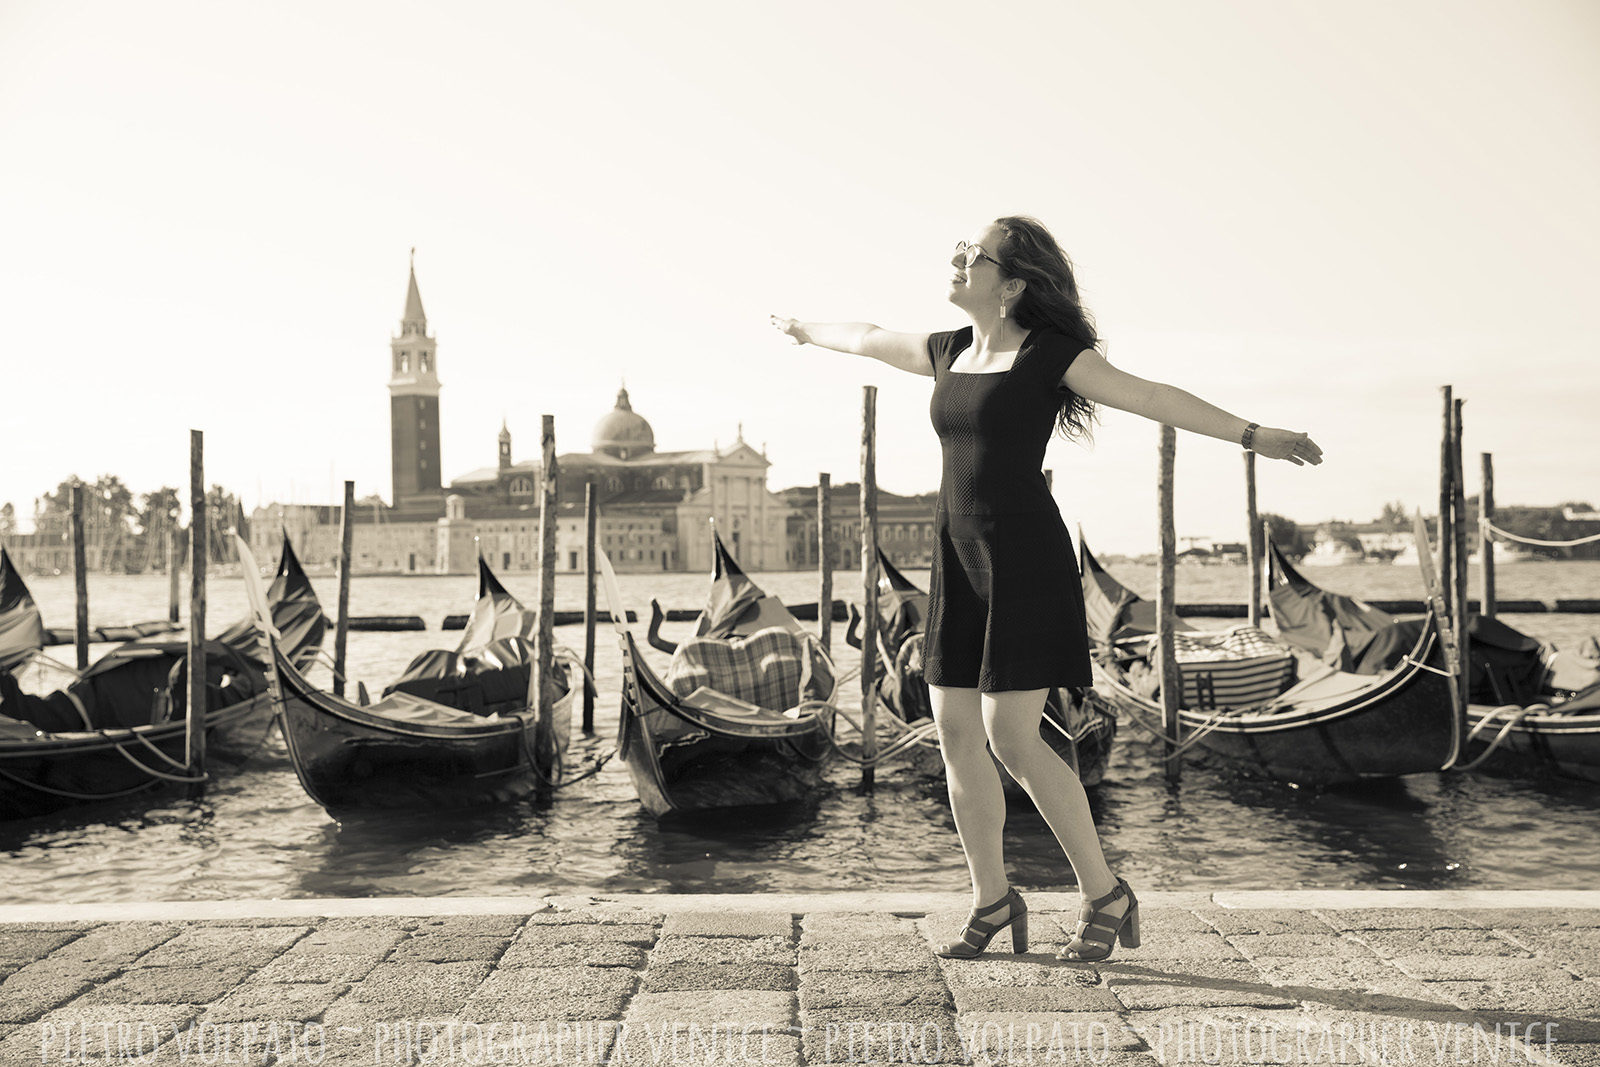 Portrait and vacation photography session in Venice with professional photographer ~ Venice photo walk for solo traveler